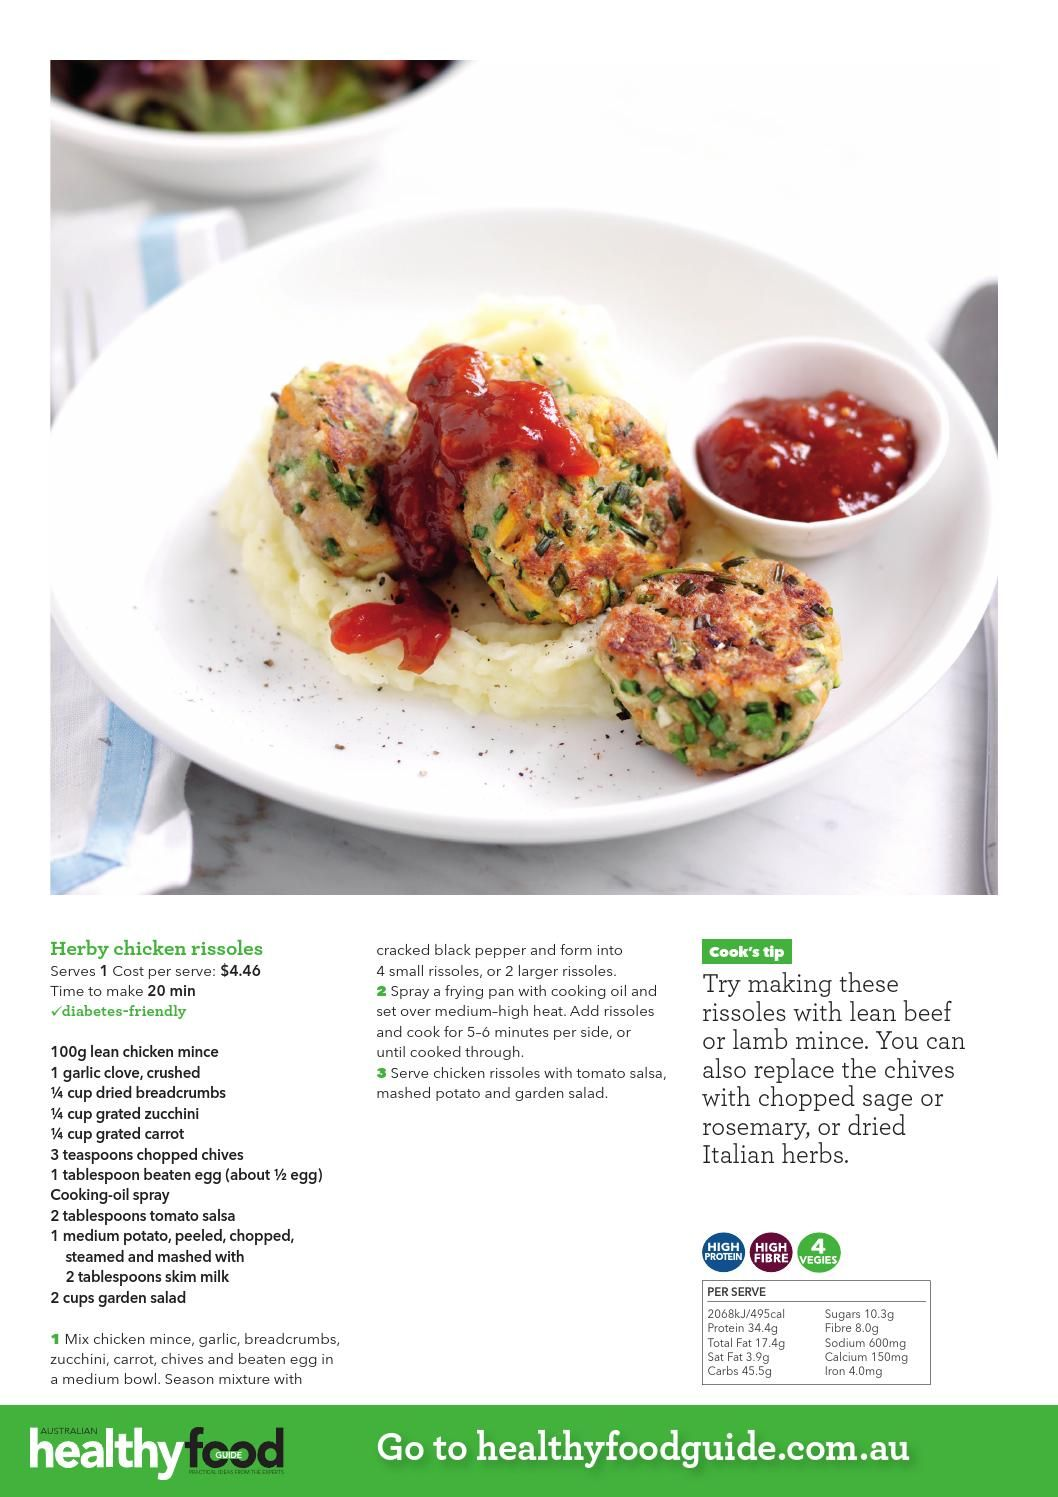 Healthy food guide all time favourite recipes favorite recipes healthy food guide all time favourite recipes forumfinder Image collections